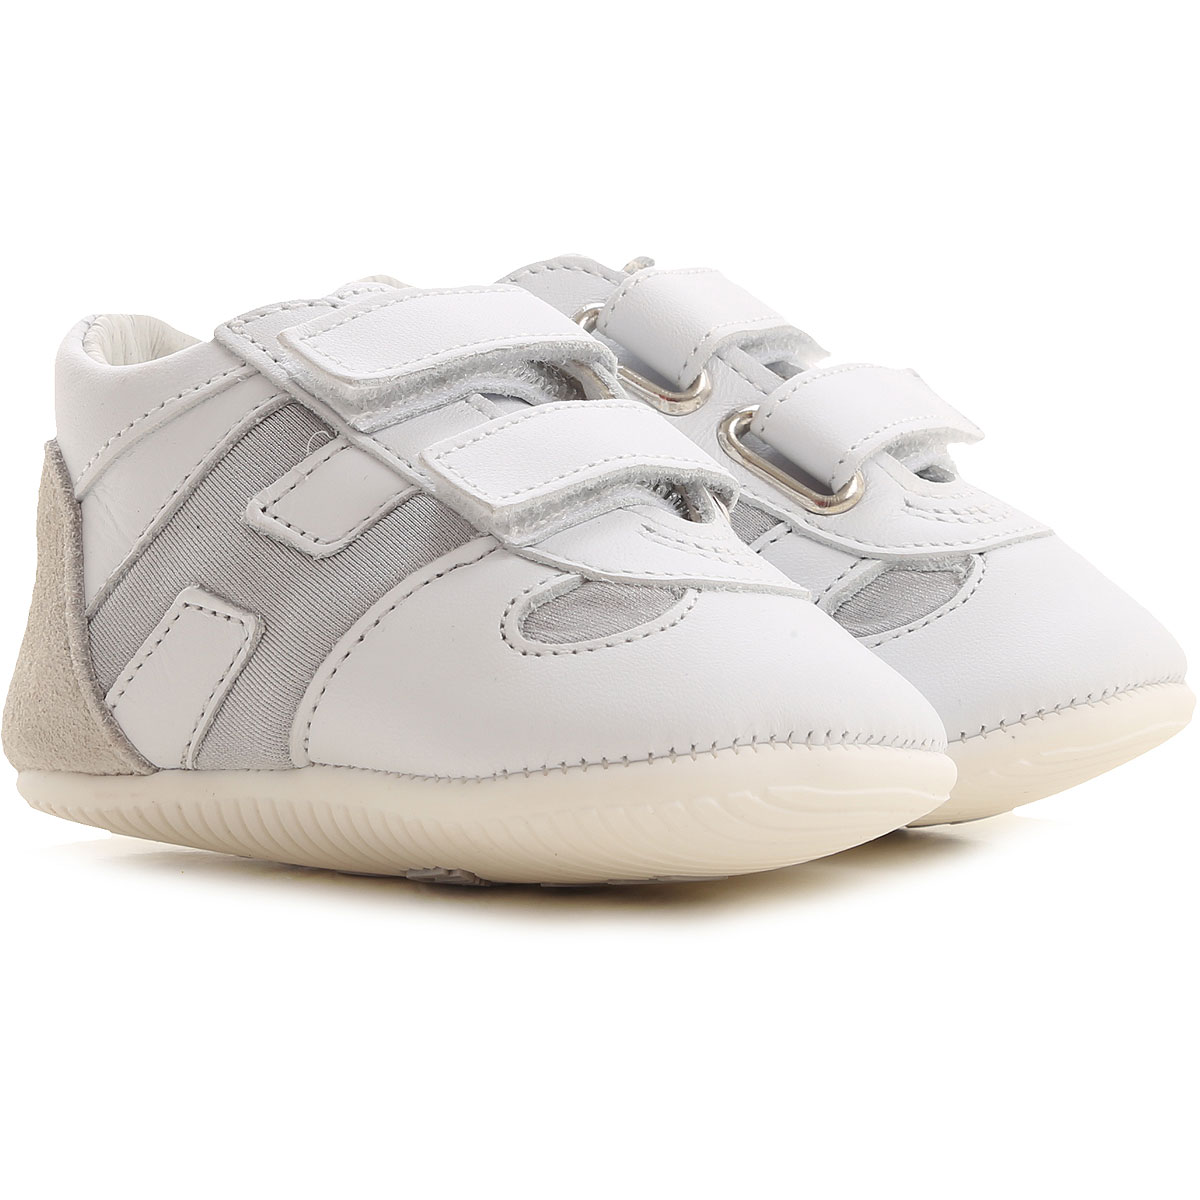 Hogan Baby Shoes for Boys On Sale, White, Leather, 2019, 2.5C 2C 3.5C